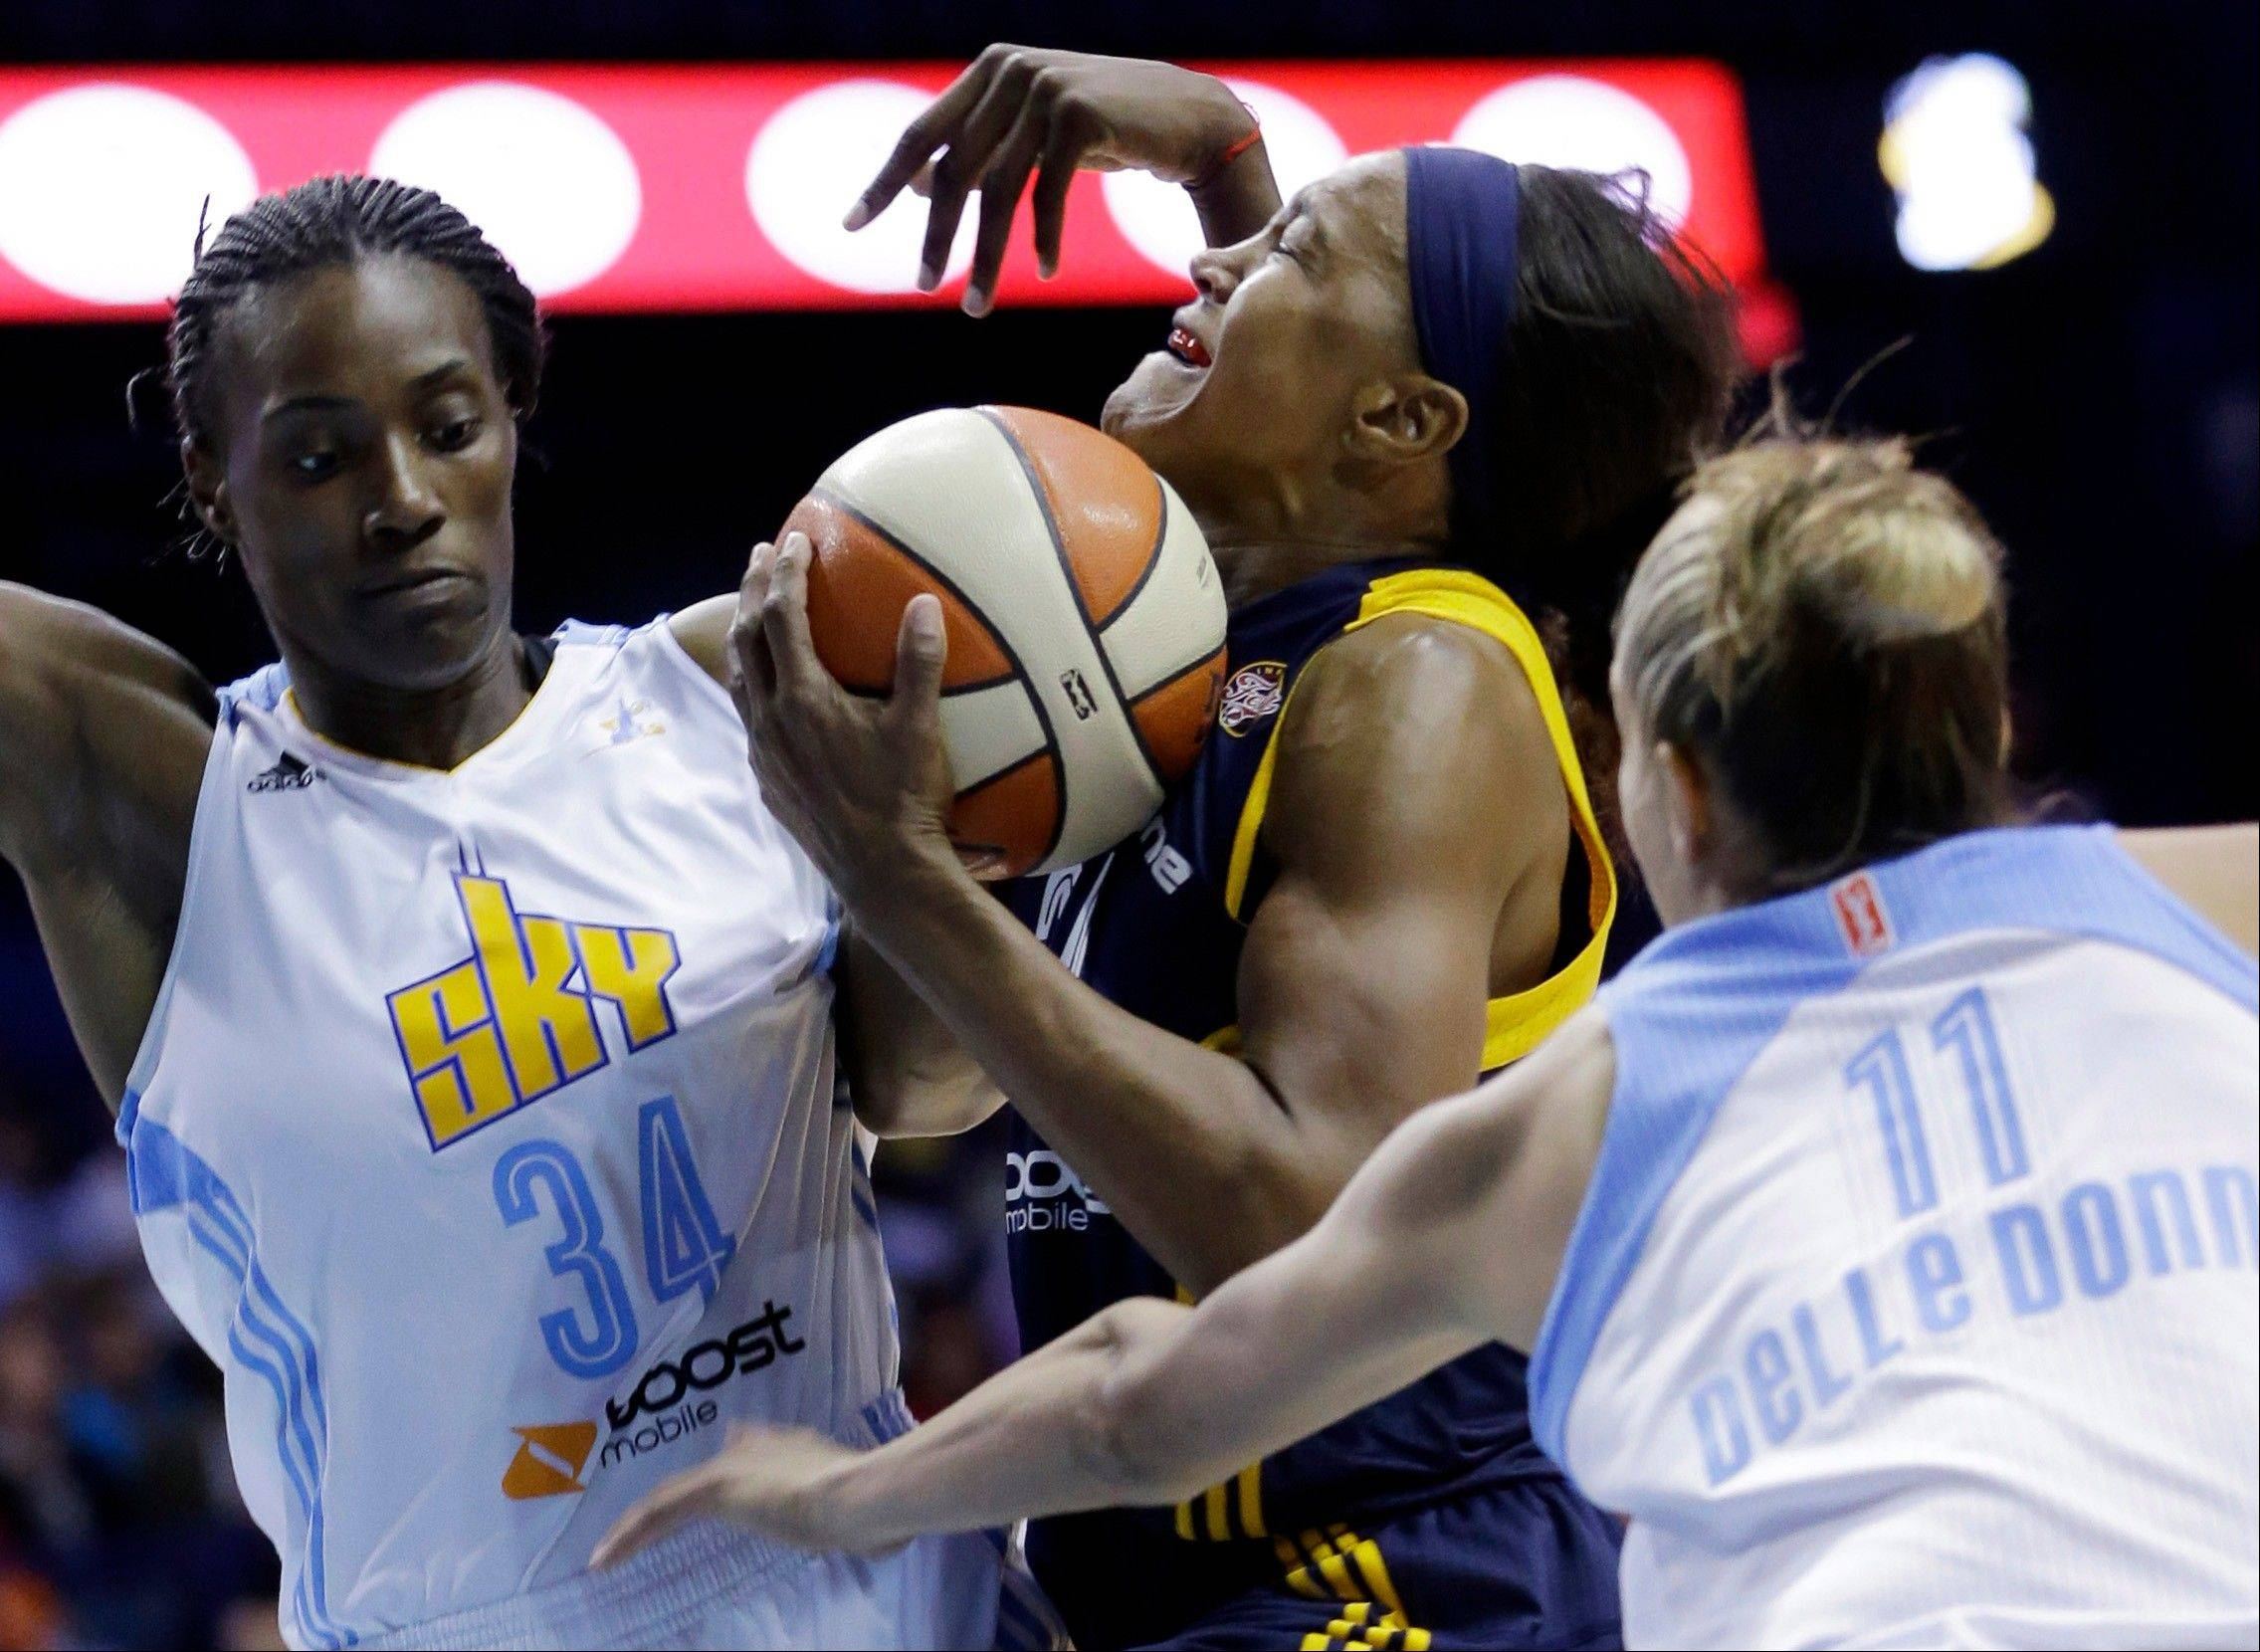 Indiana Fever forward Tamika Catchings, center, drives to the basket between Chicago Sky center Sylvia Fowles, left, and forward Elena Delle Donne during the first half in Game 1 of the WNBA basketball Eastern Conference semifinal series on Friday, Sept. 20, 2013, in Rosemont, Ill.